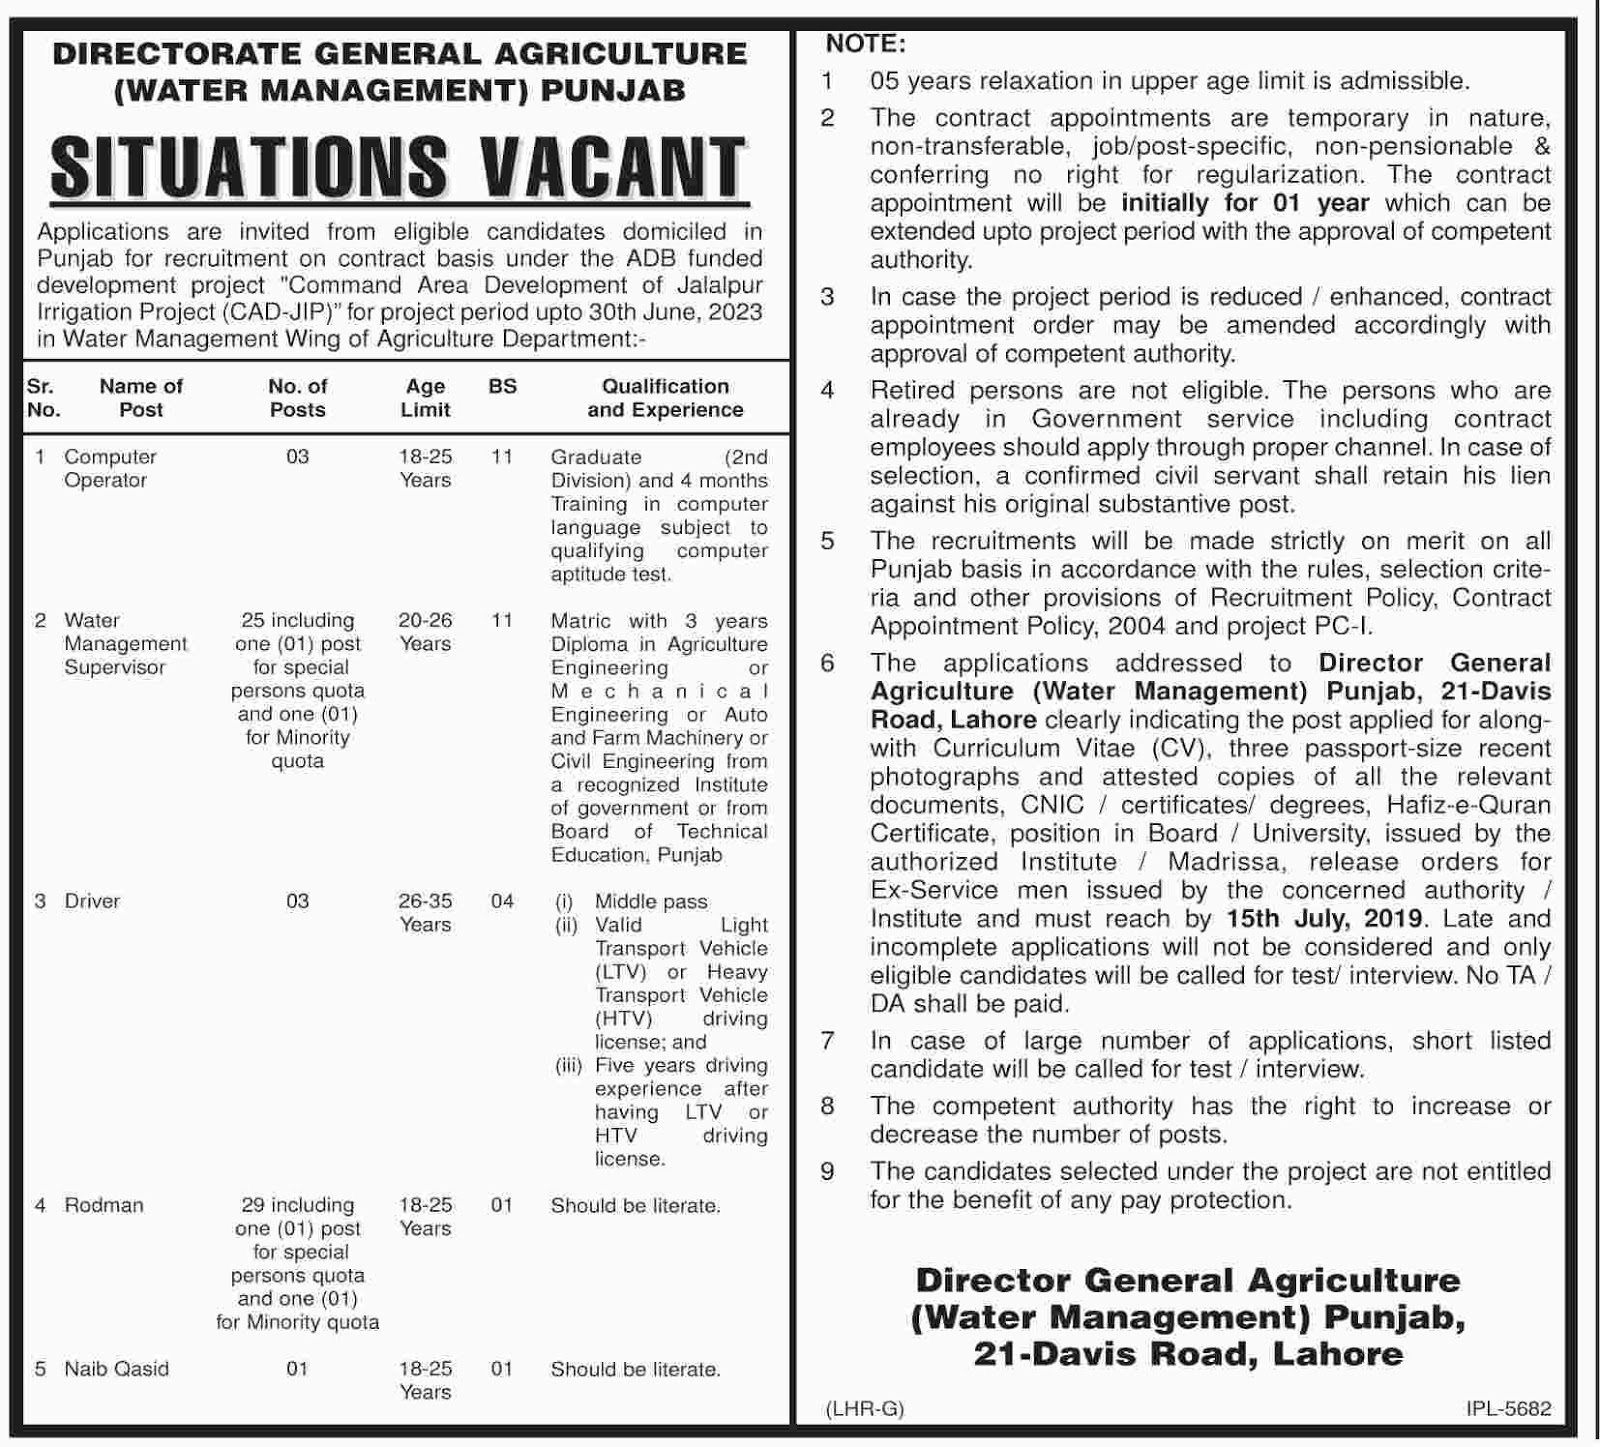 Jobs in General Agriculture (Water Management) Punjab 29 June 2019